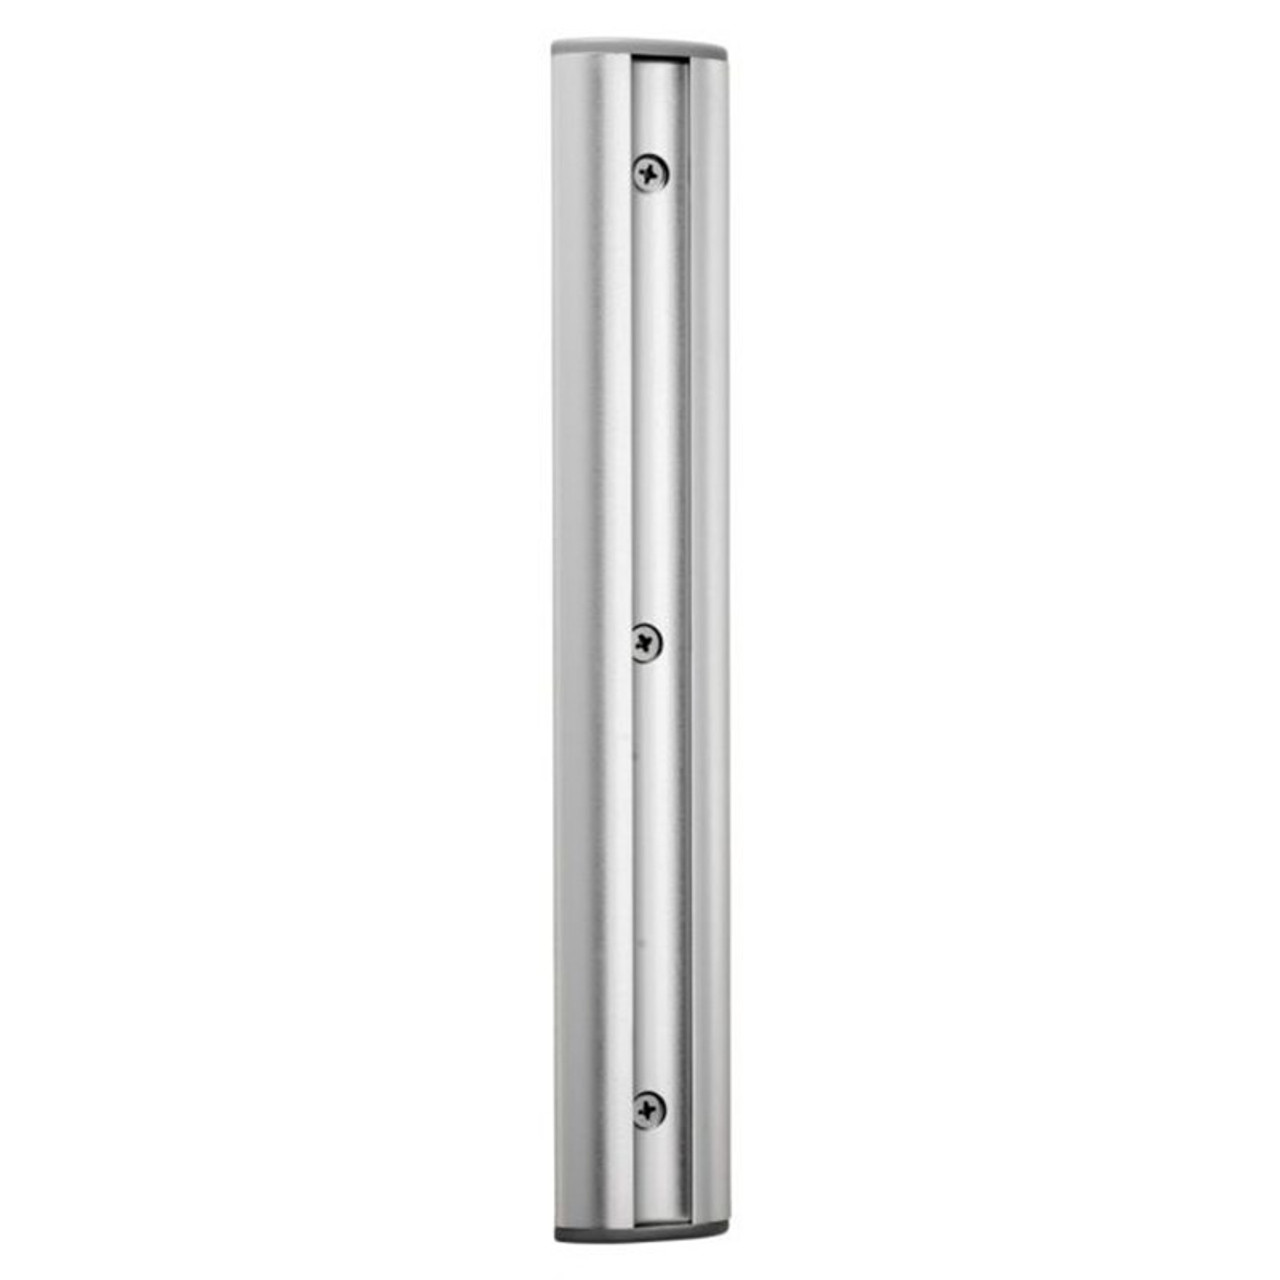 Image for Atdec AWM-W35 350mm Wall Mount for AWM Arms - Silver CX Computer Superstore